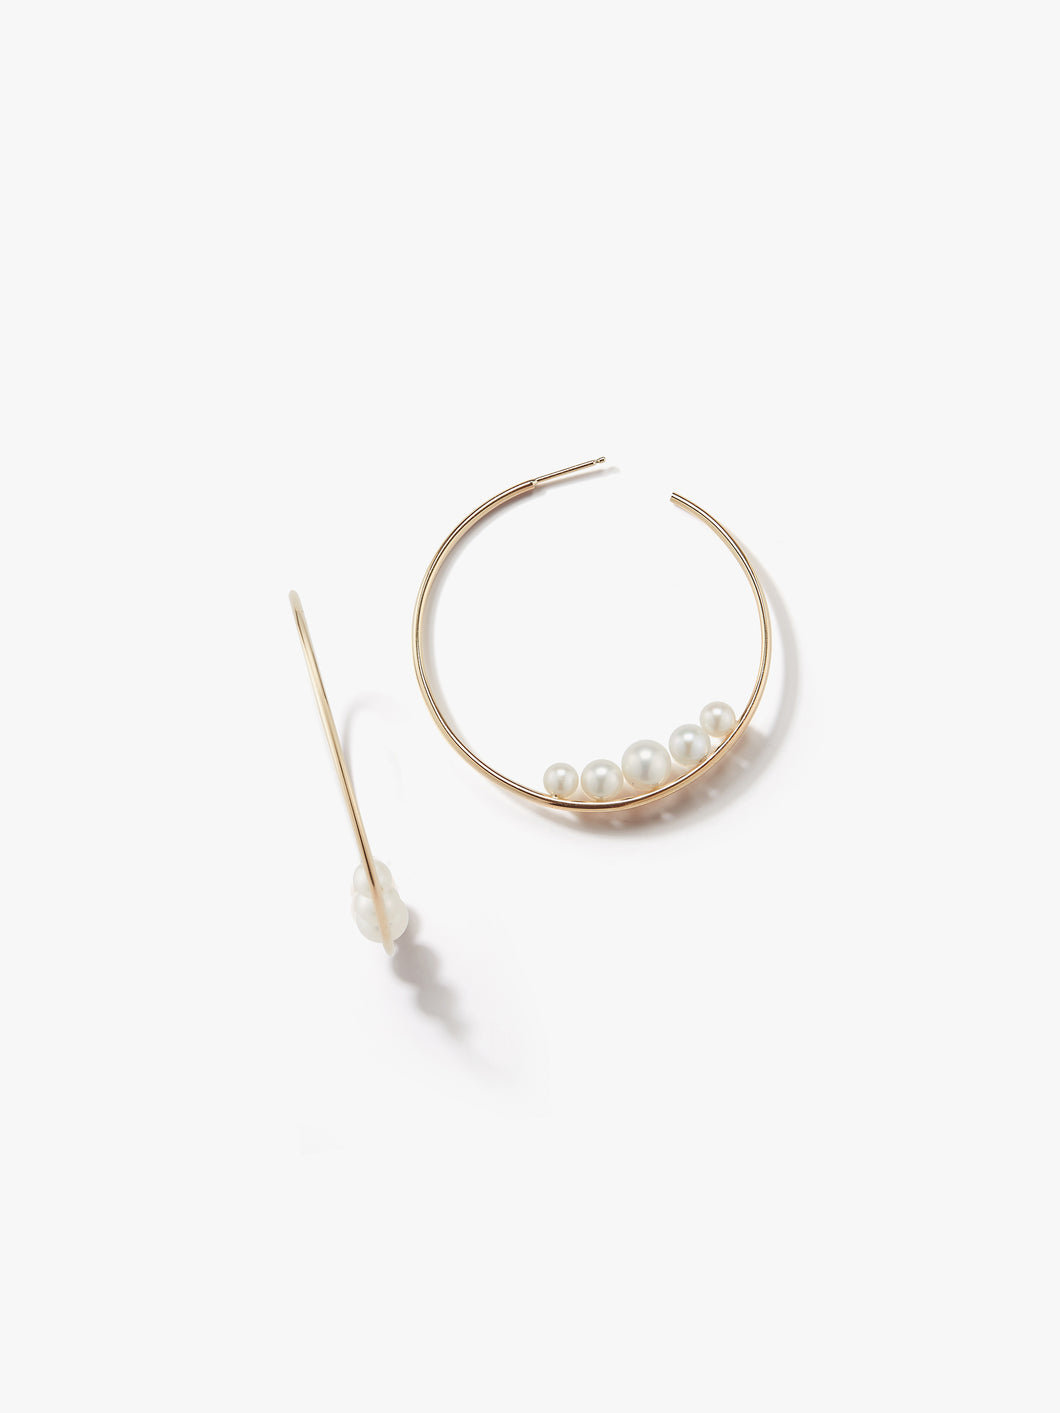 Sea of Beauty Collection.  Medium Graduating Floating Pearl Hoop Earrings  SBE192